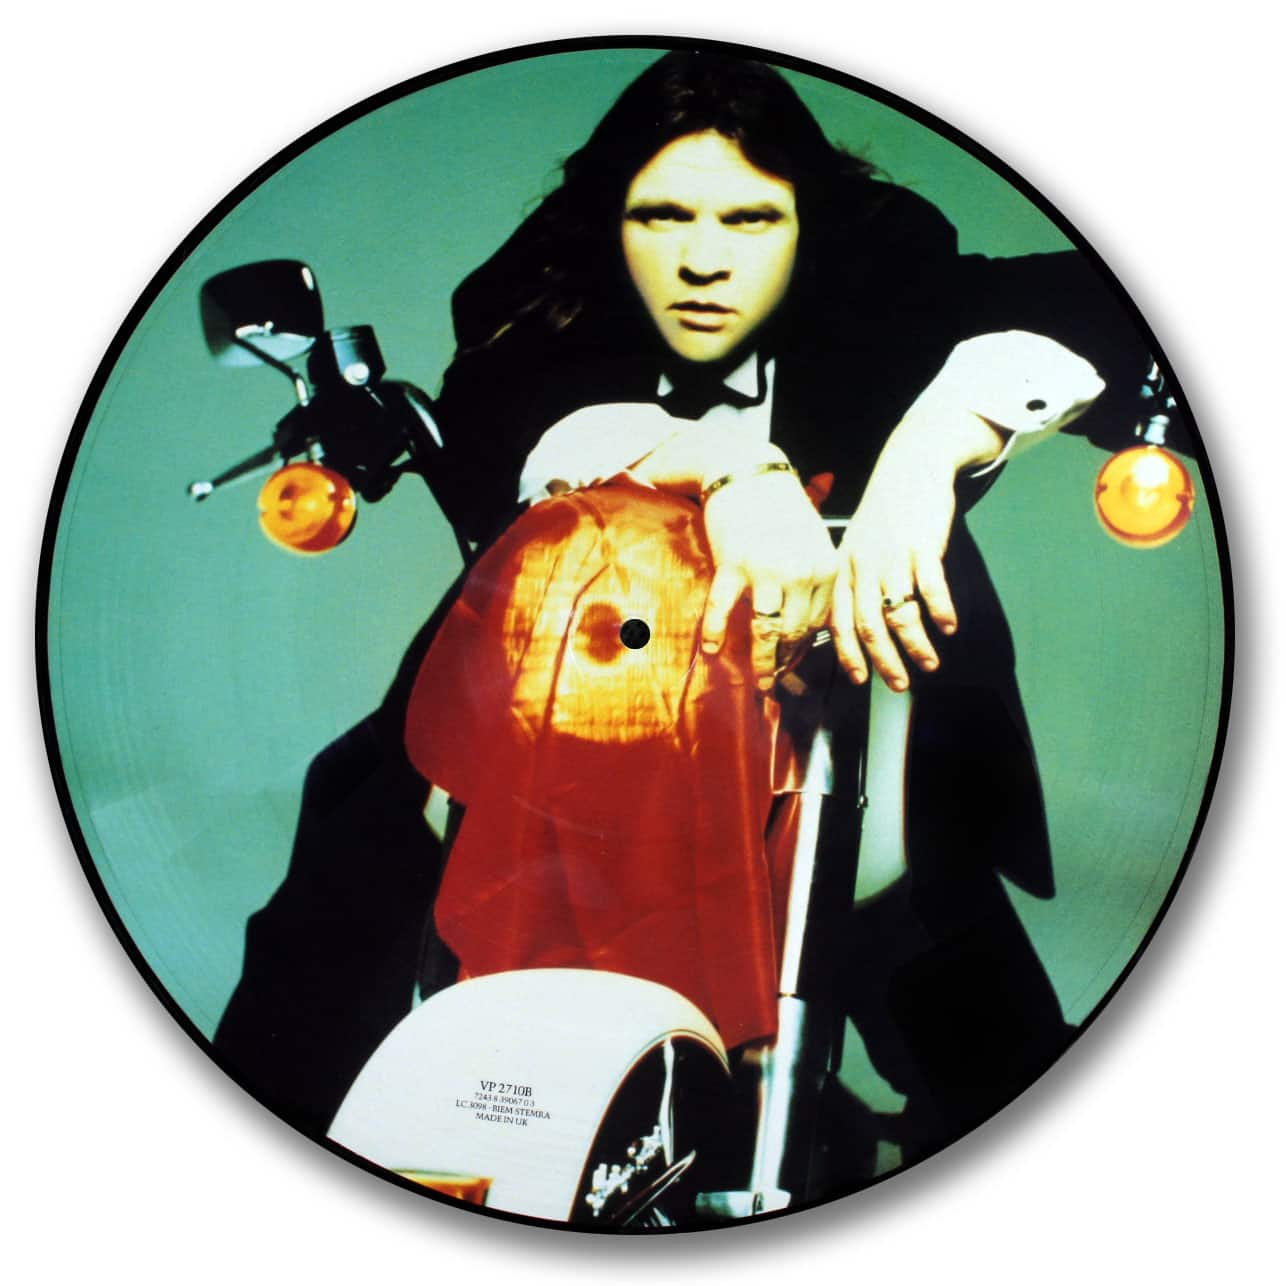 Meat Loaf, Bat out of Hell 2 Picture Disc